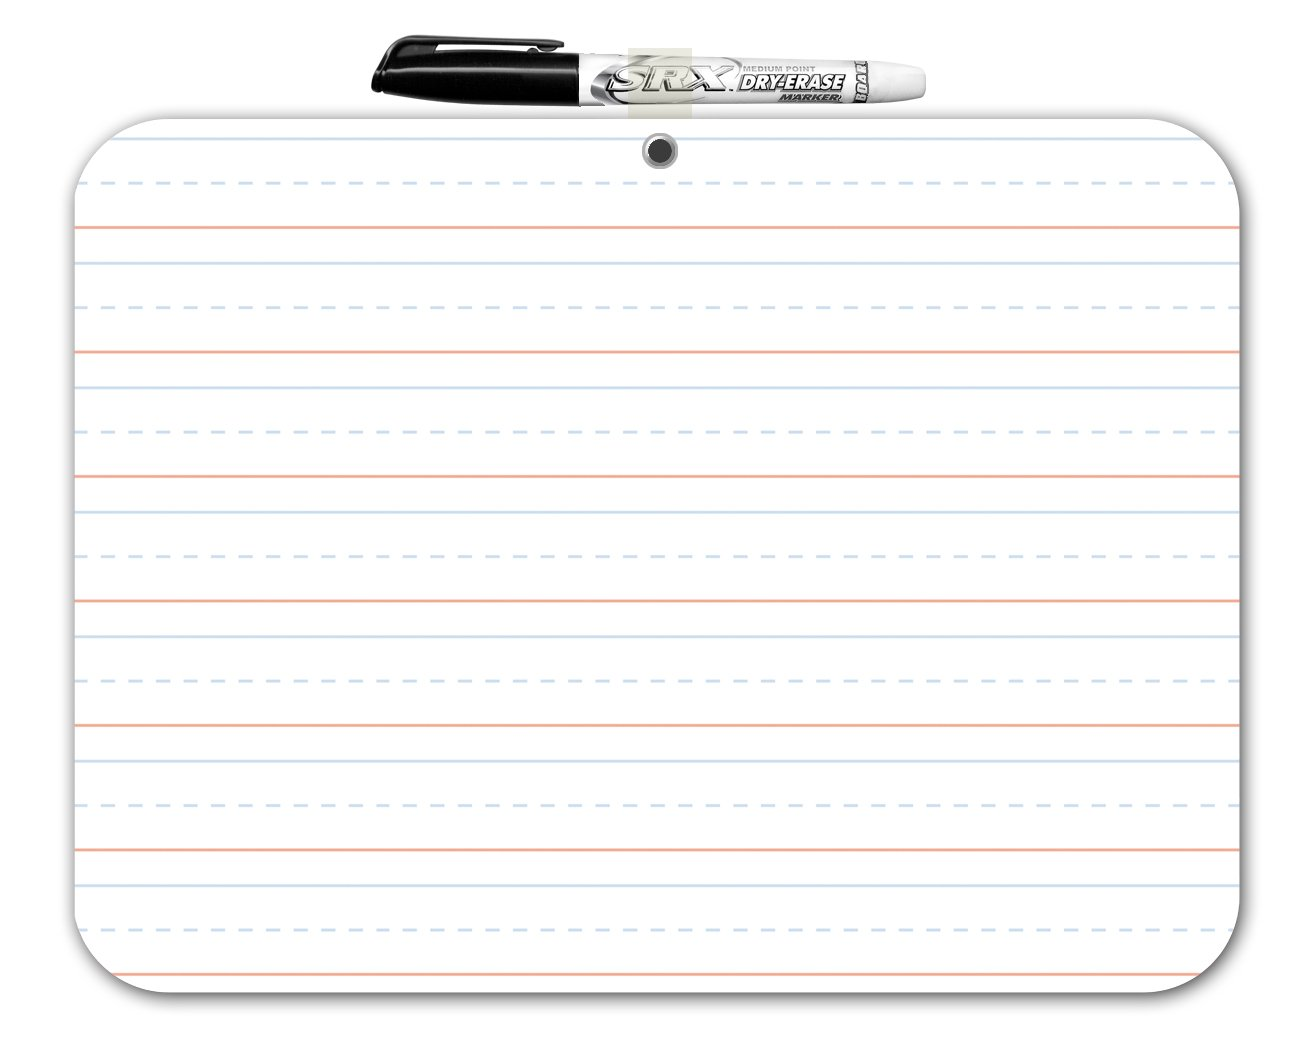 Amazon.com : Board Dudes Double Sided Dry Erase Lapboard 9 X 12 Inches  (DFB52) : Office Products  Lined Paper With Drawing Box